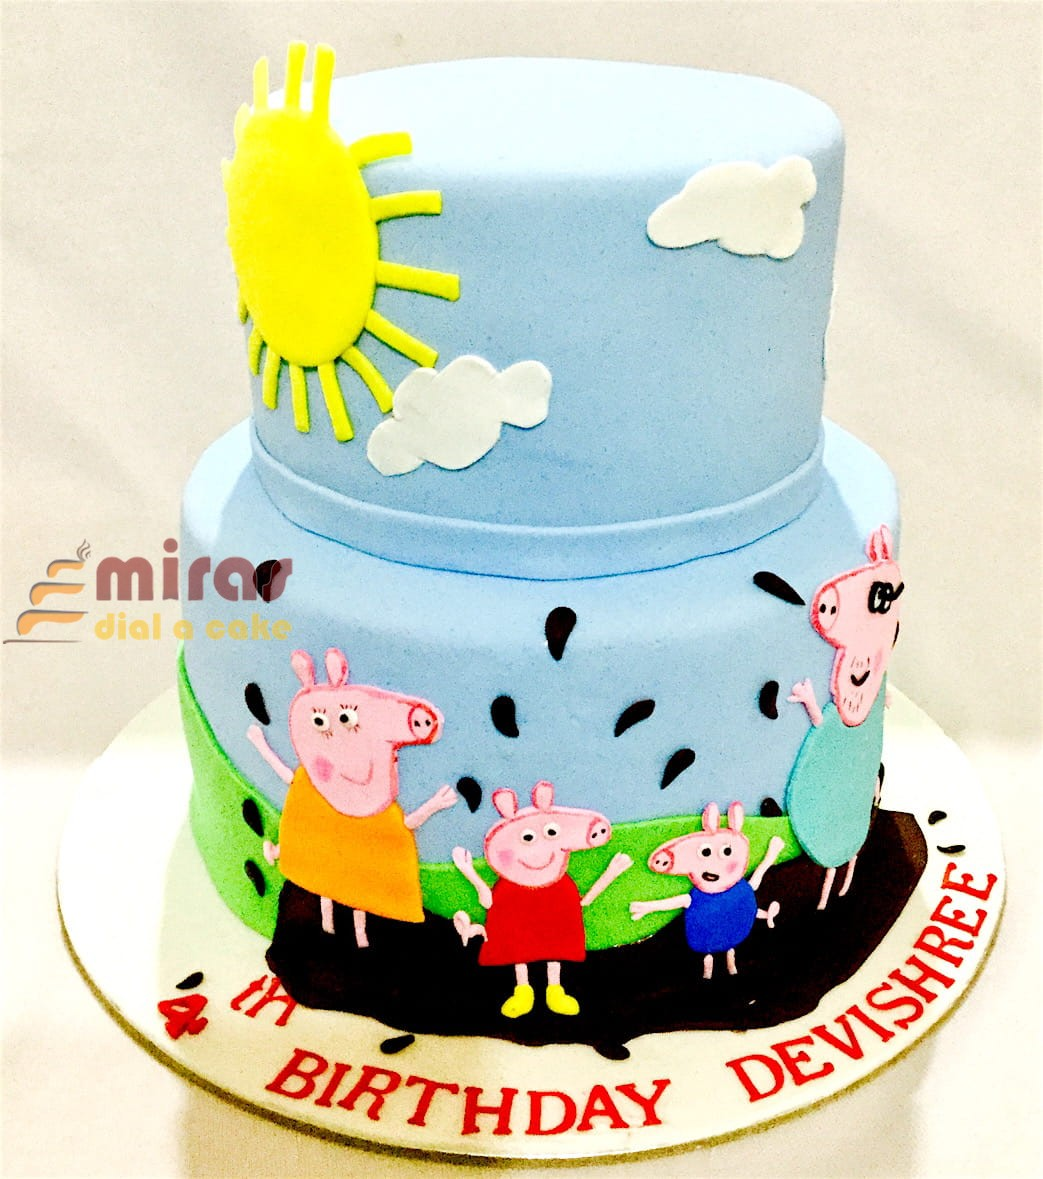 Tremendous Online Peppa Pig Theme Birthday Cakes For Kids I Order Online For Personalised Birthday Cards Beptaeletsinfo